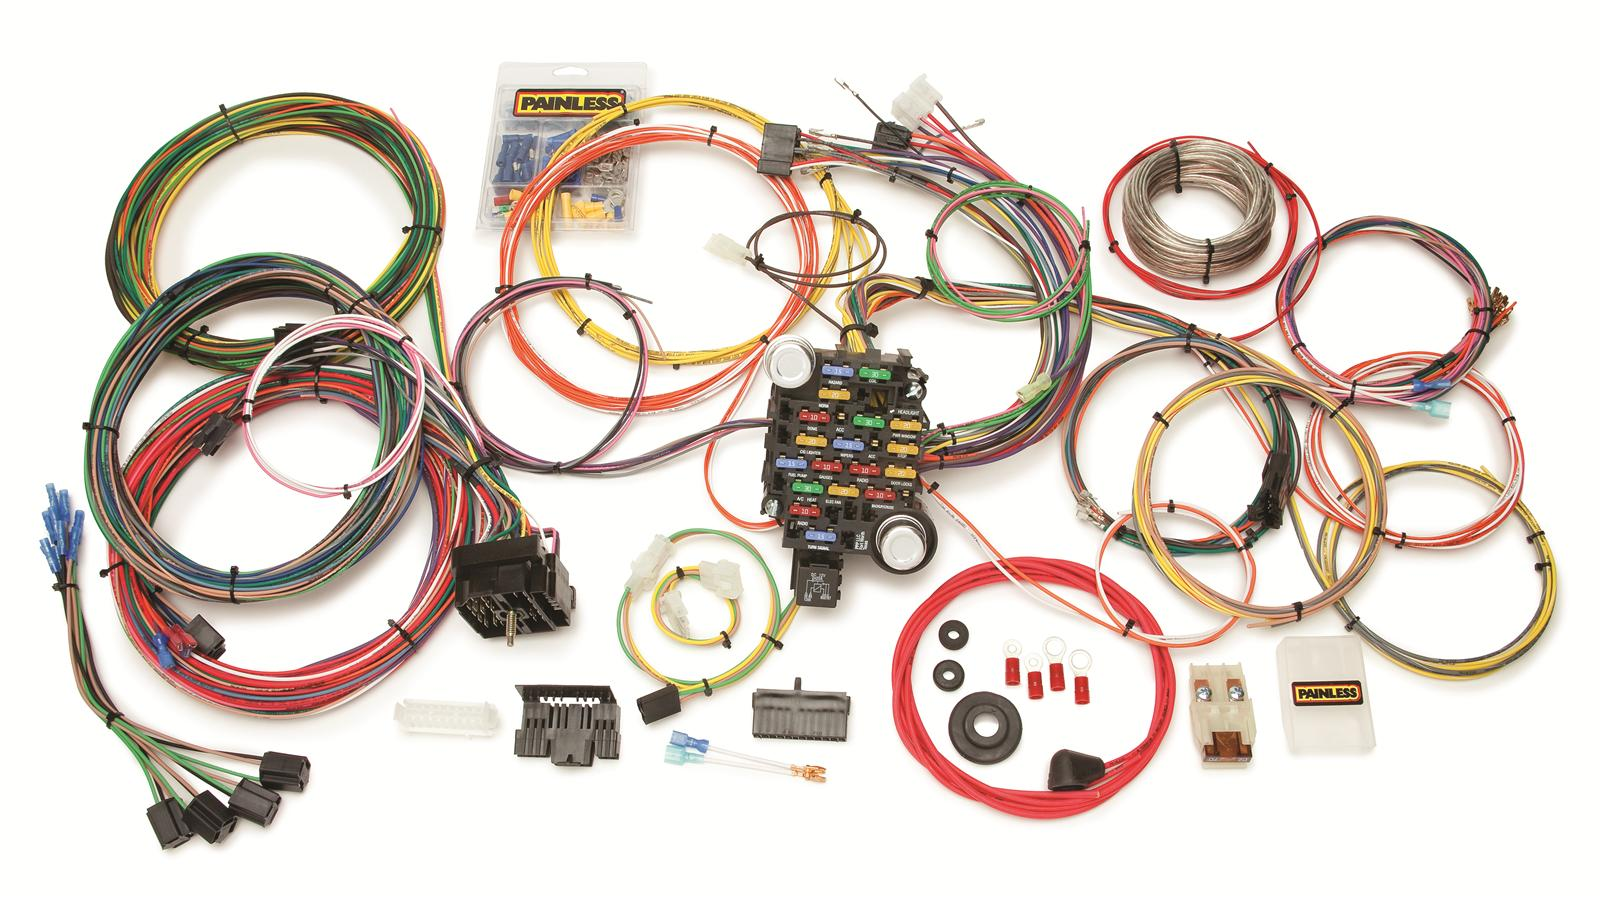 prf 10205_xl painless performance gmc chevy truck harnesses 10205 free gm truck wiring harness at reclaimingppi.co